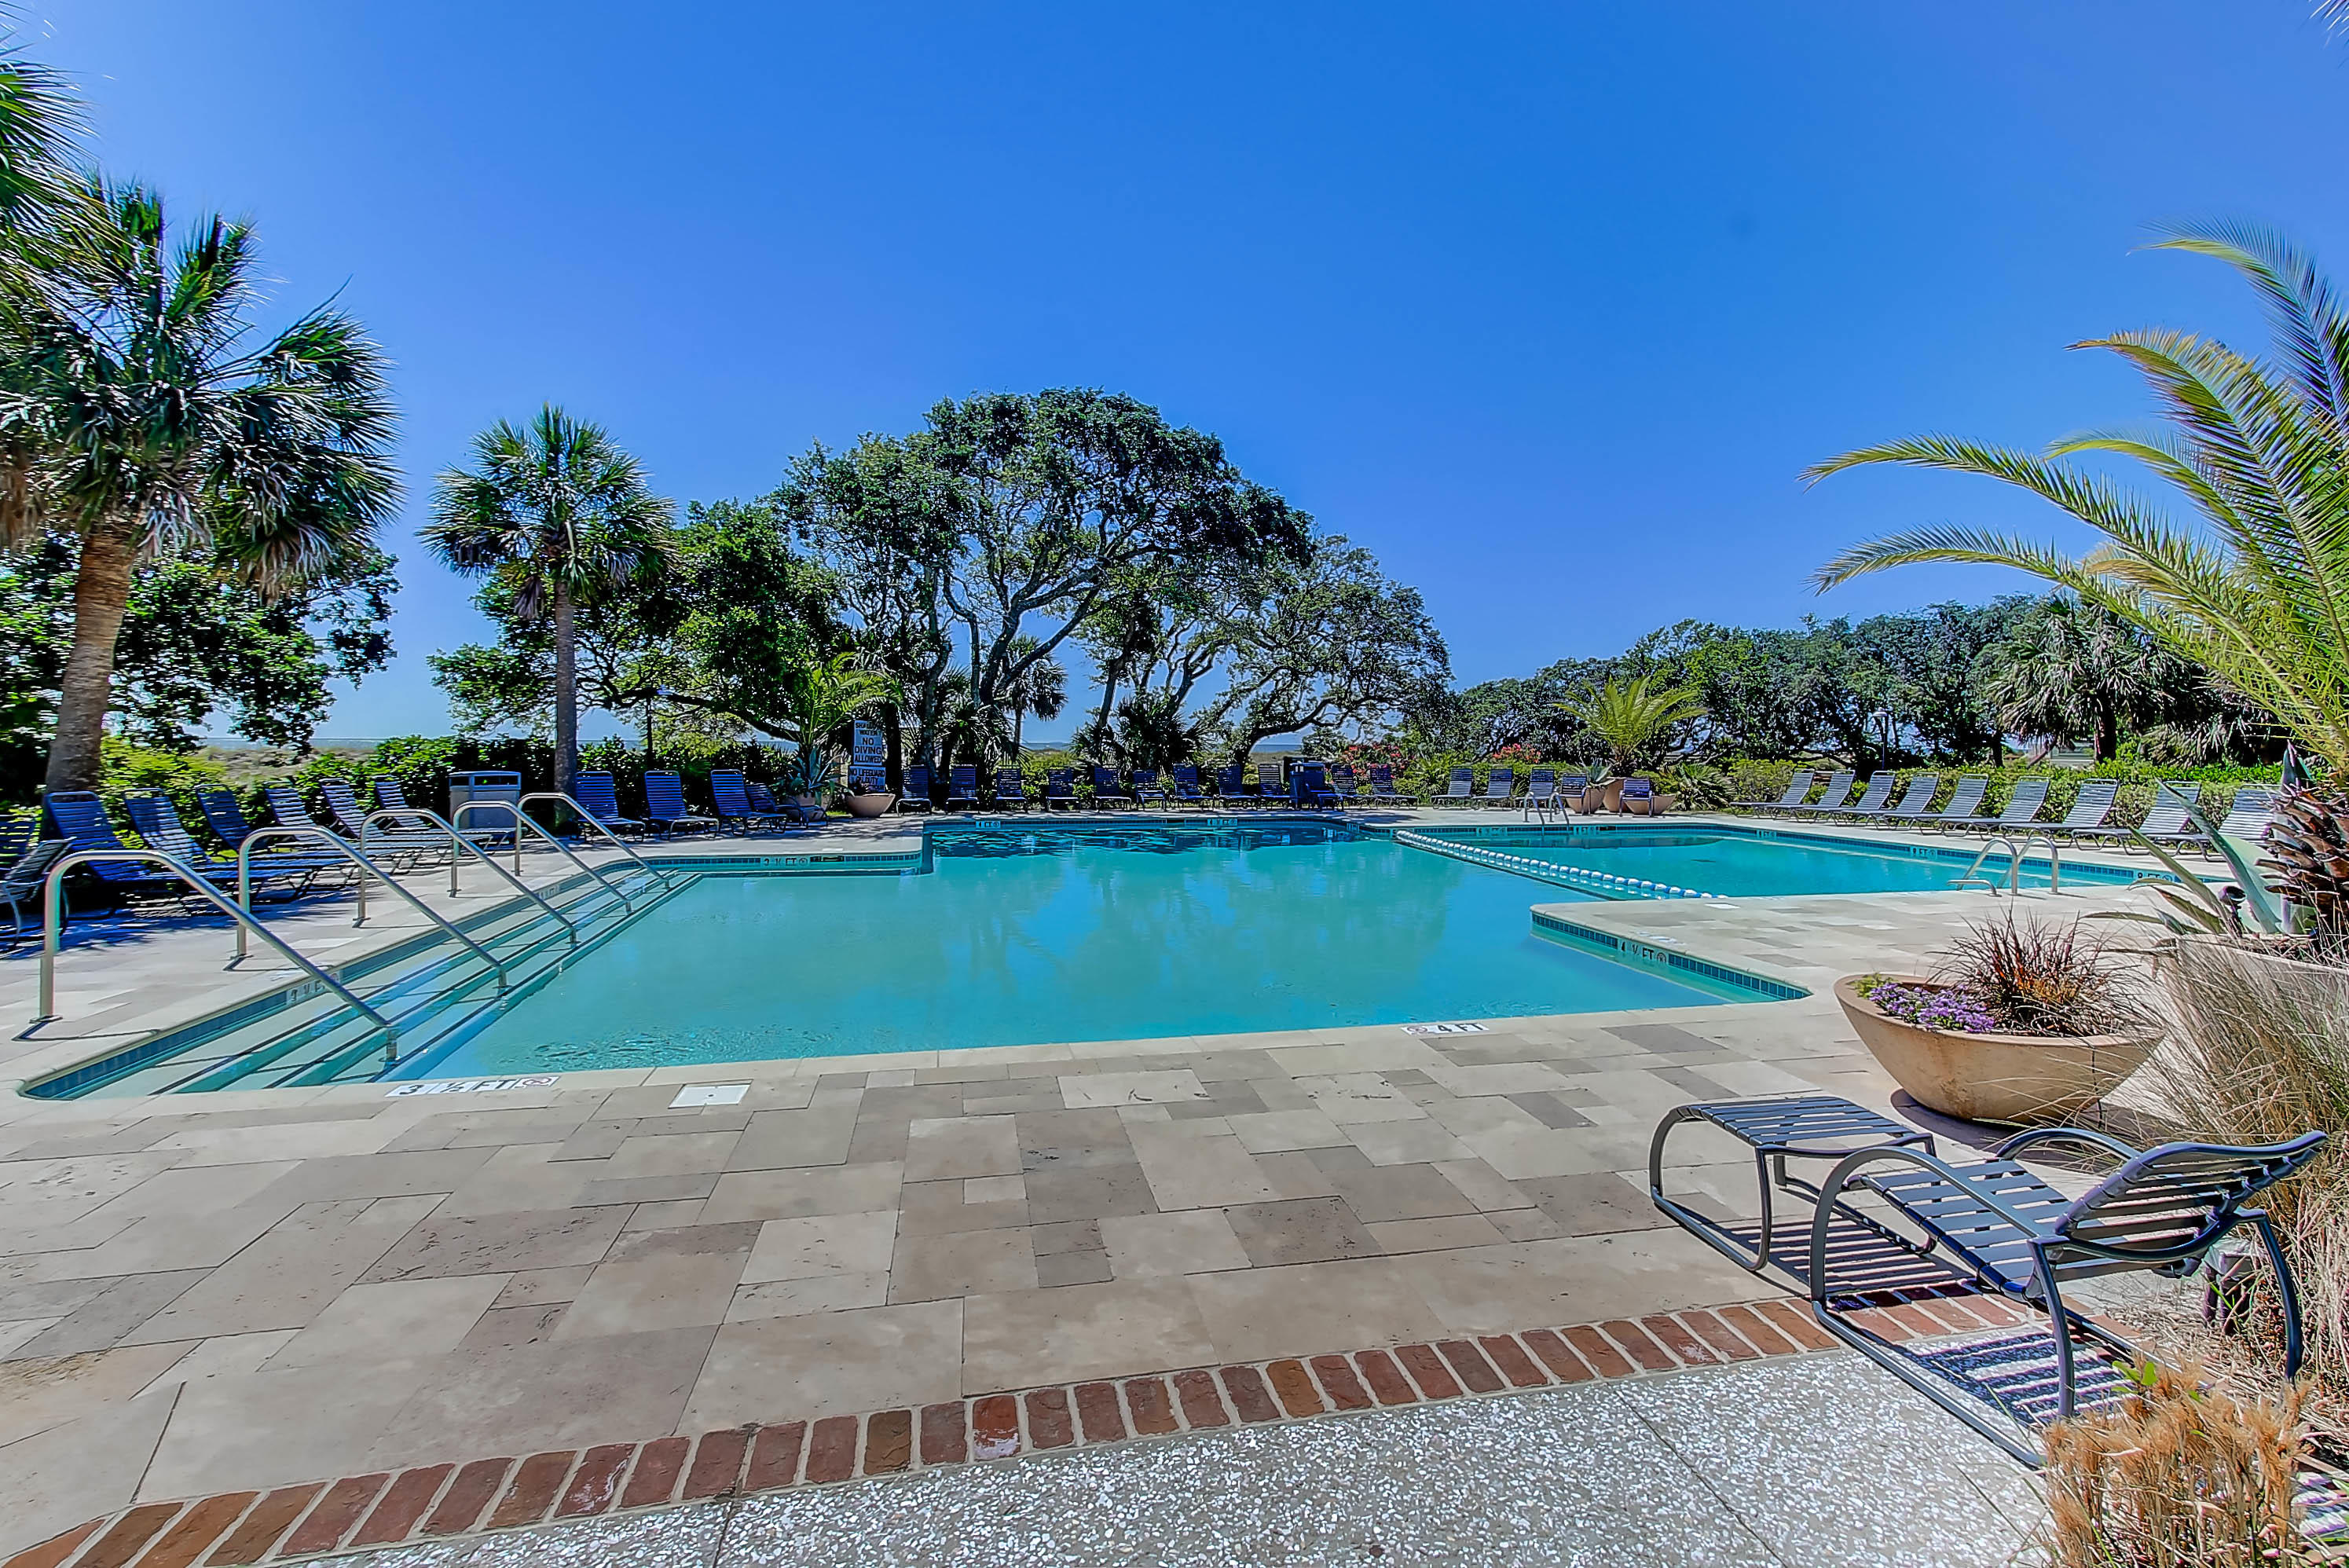 Wild Dunes Homes For Sale - 116-C Shipwatch, Isle of Palms, SC - 5